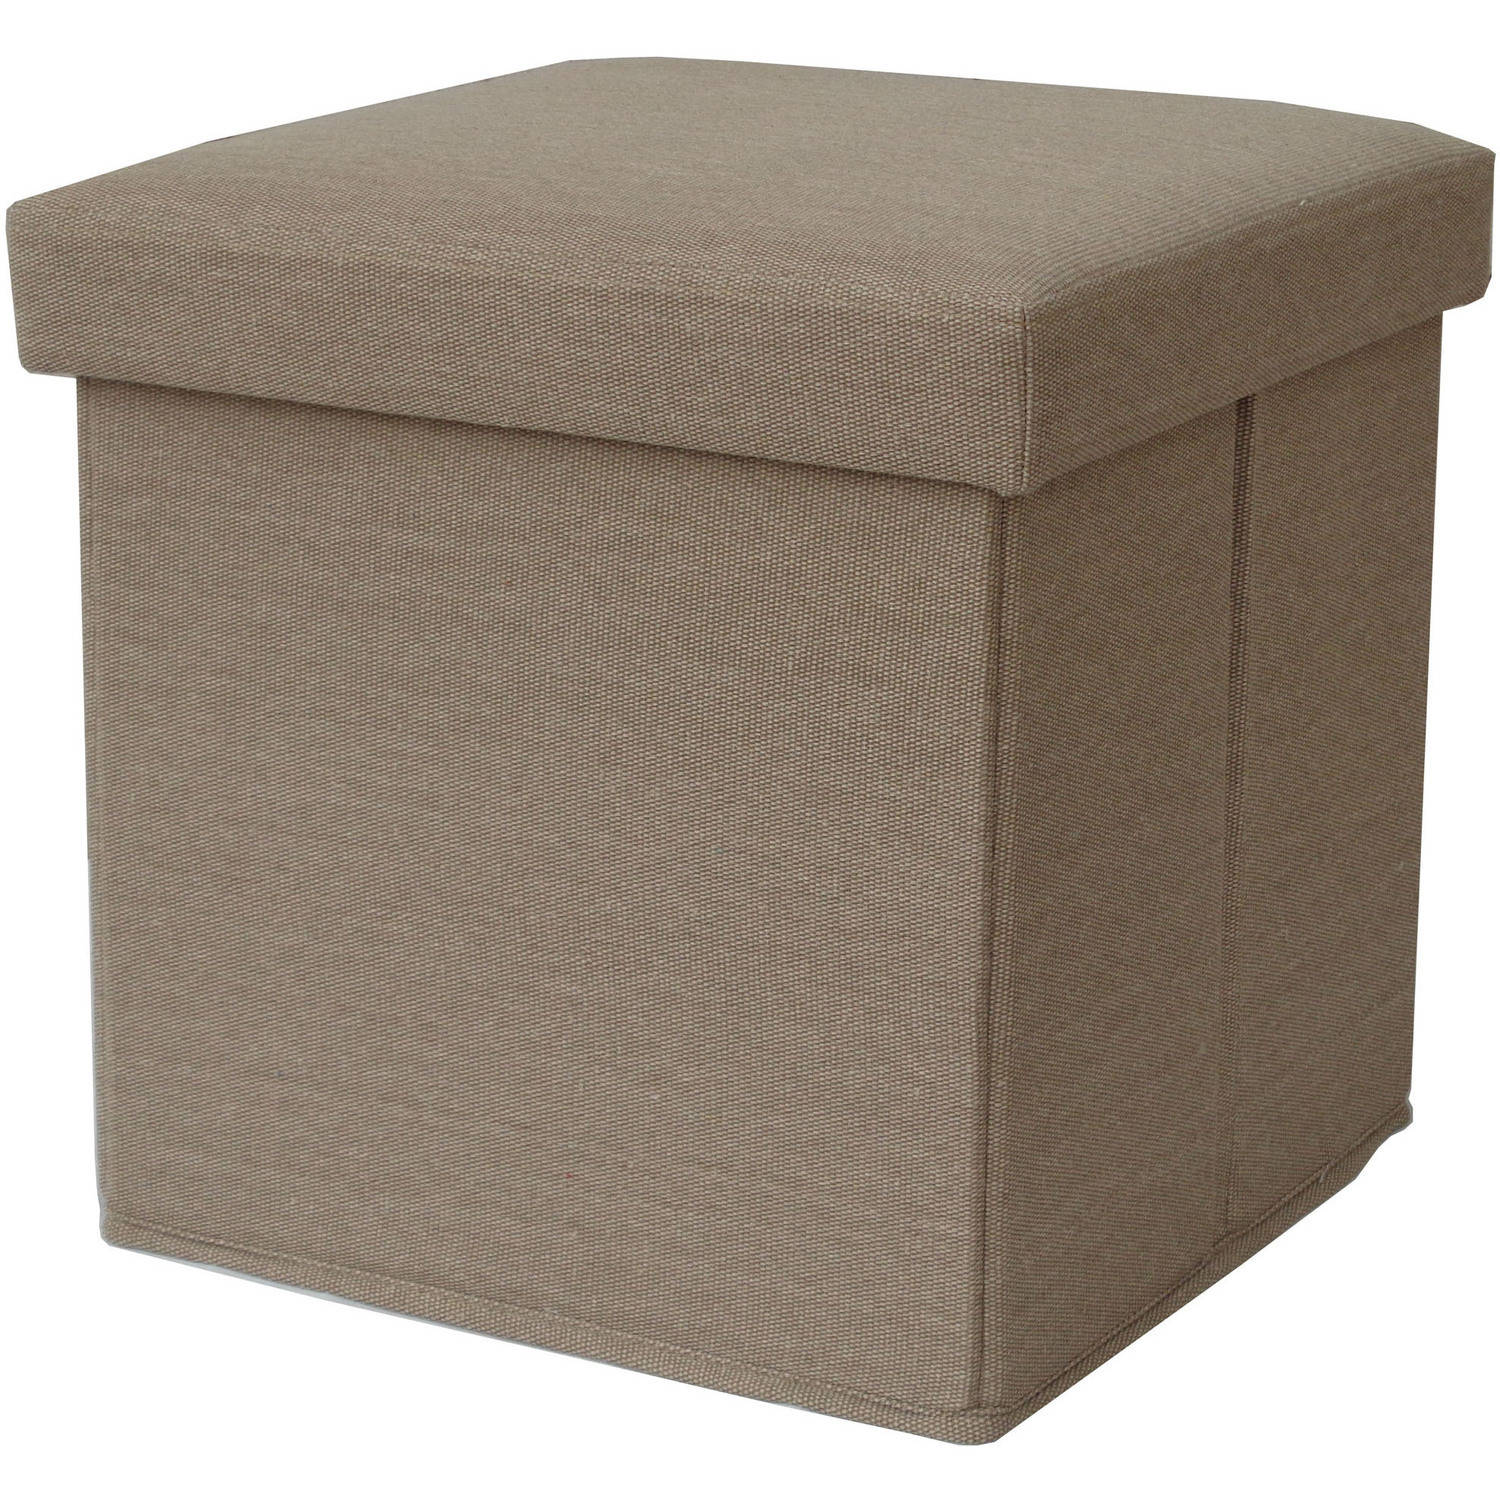 Mainstays Collapsible Linen Storage Ottoman, Tan